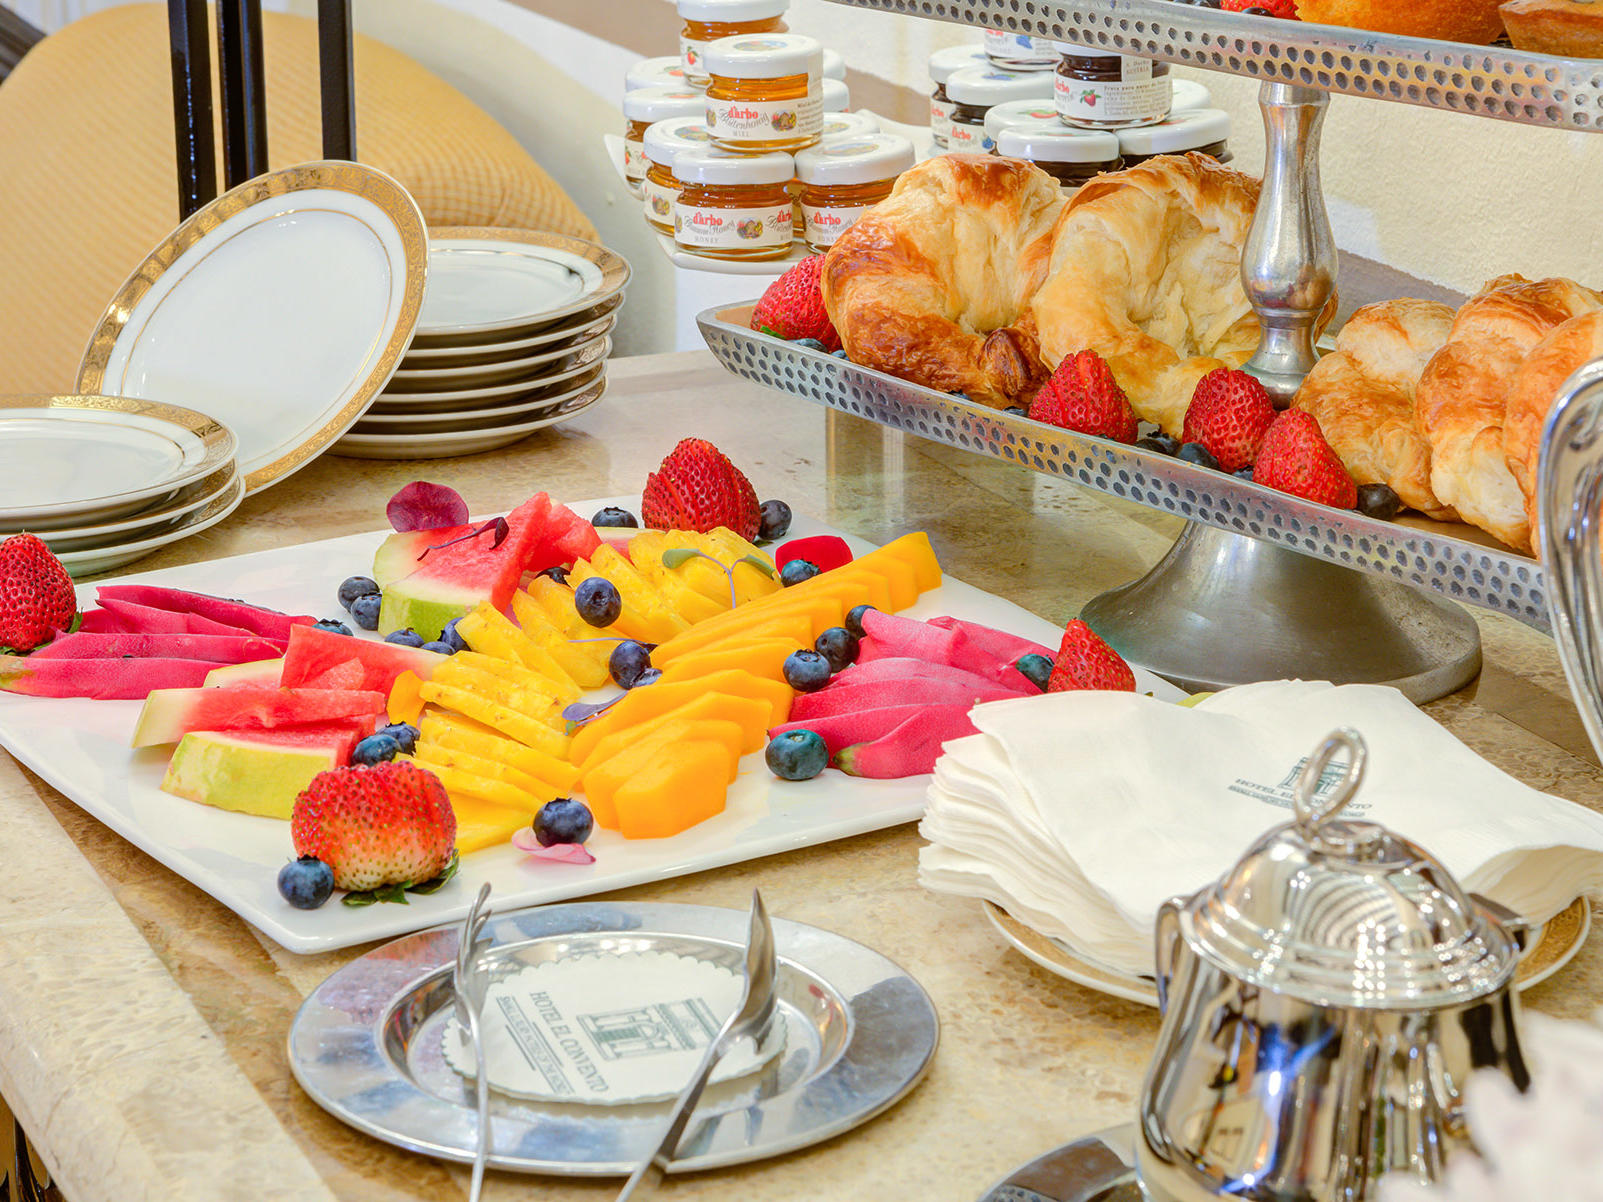 breakfast and brunch catering setting